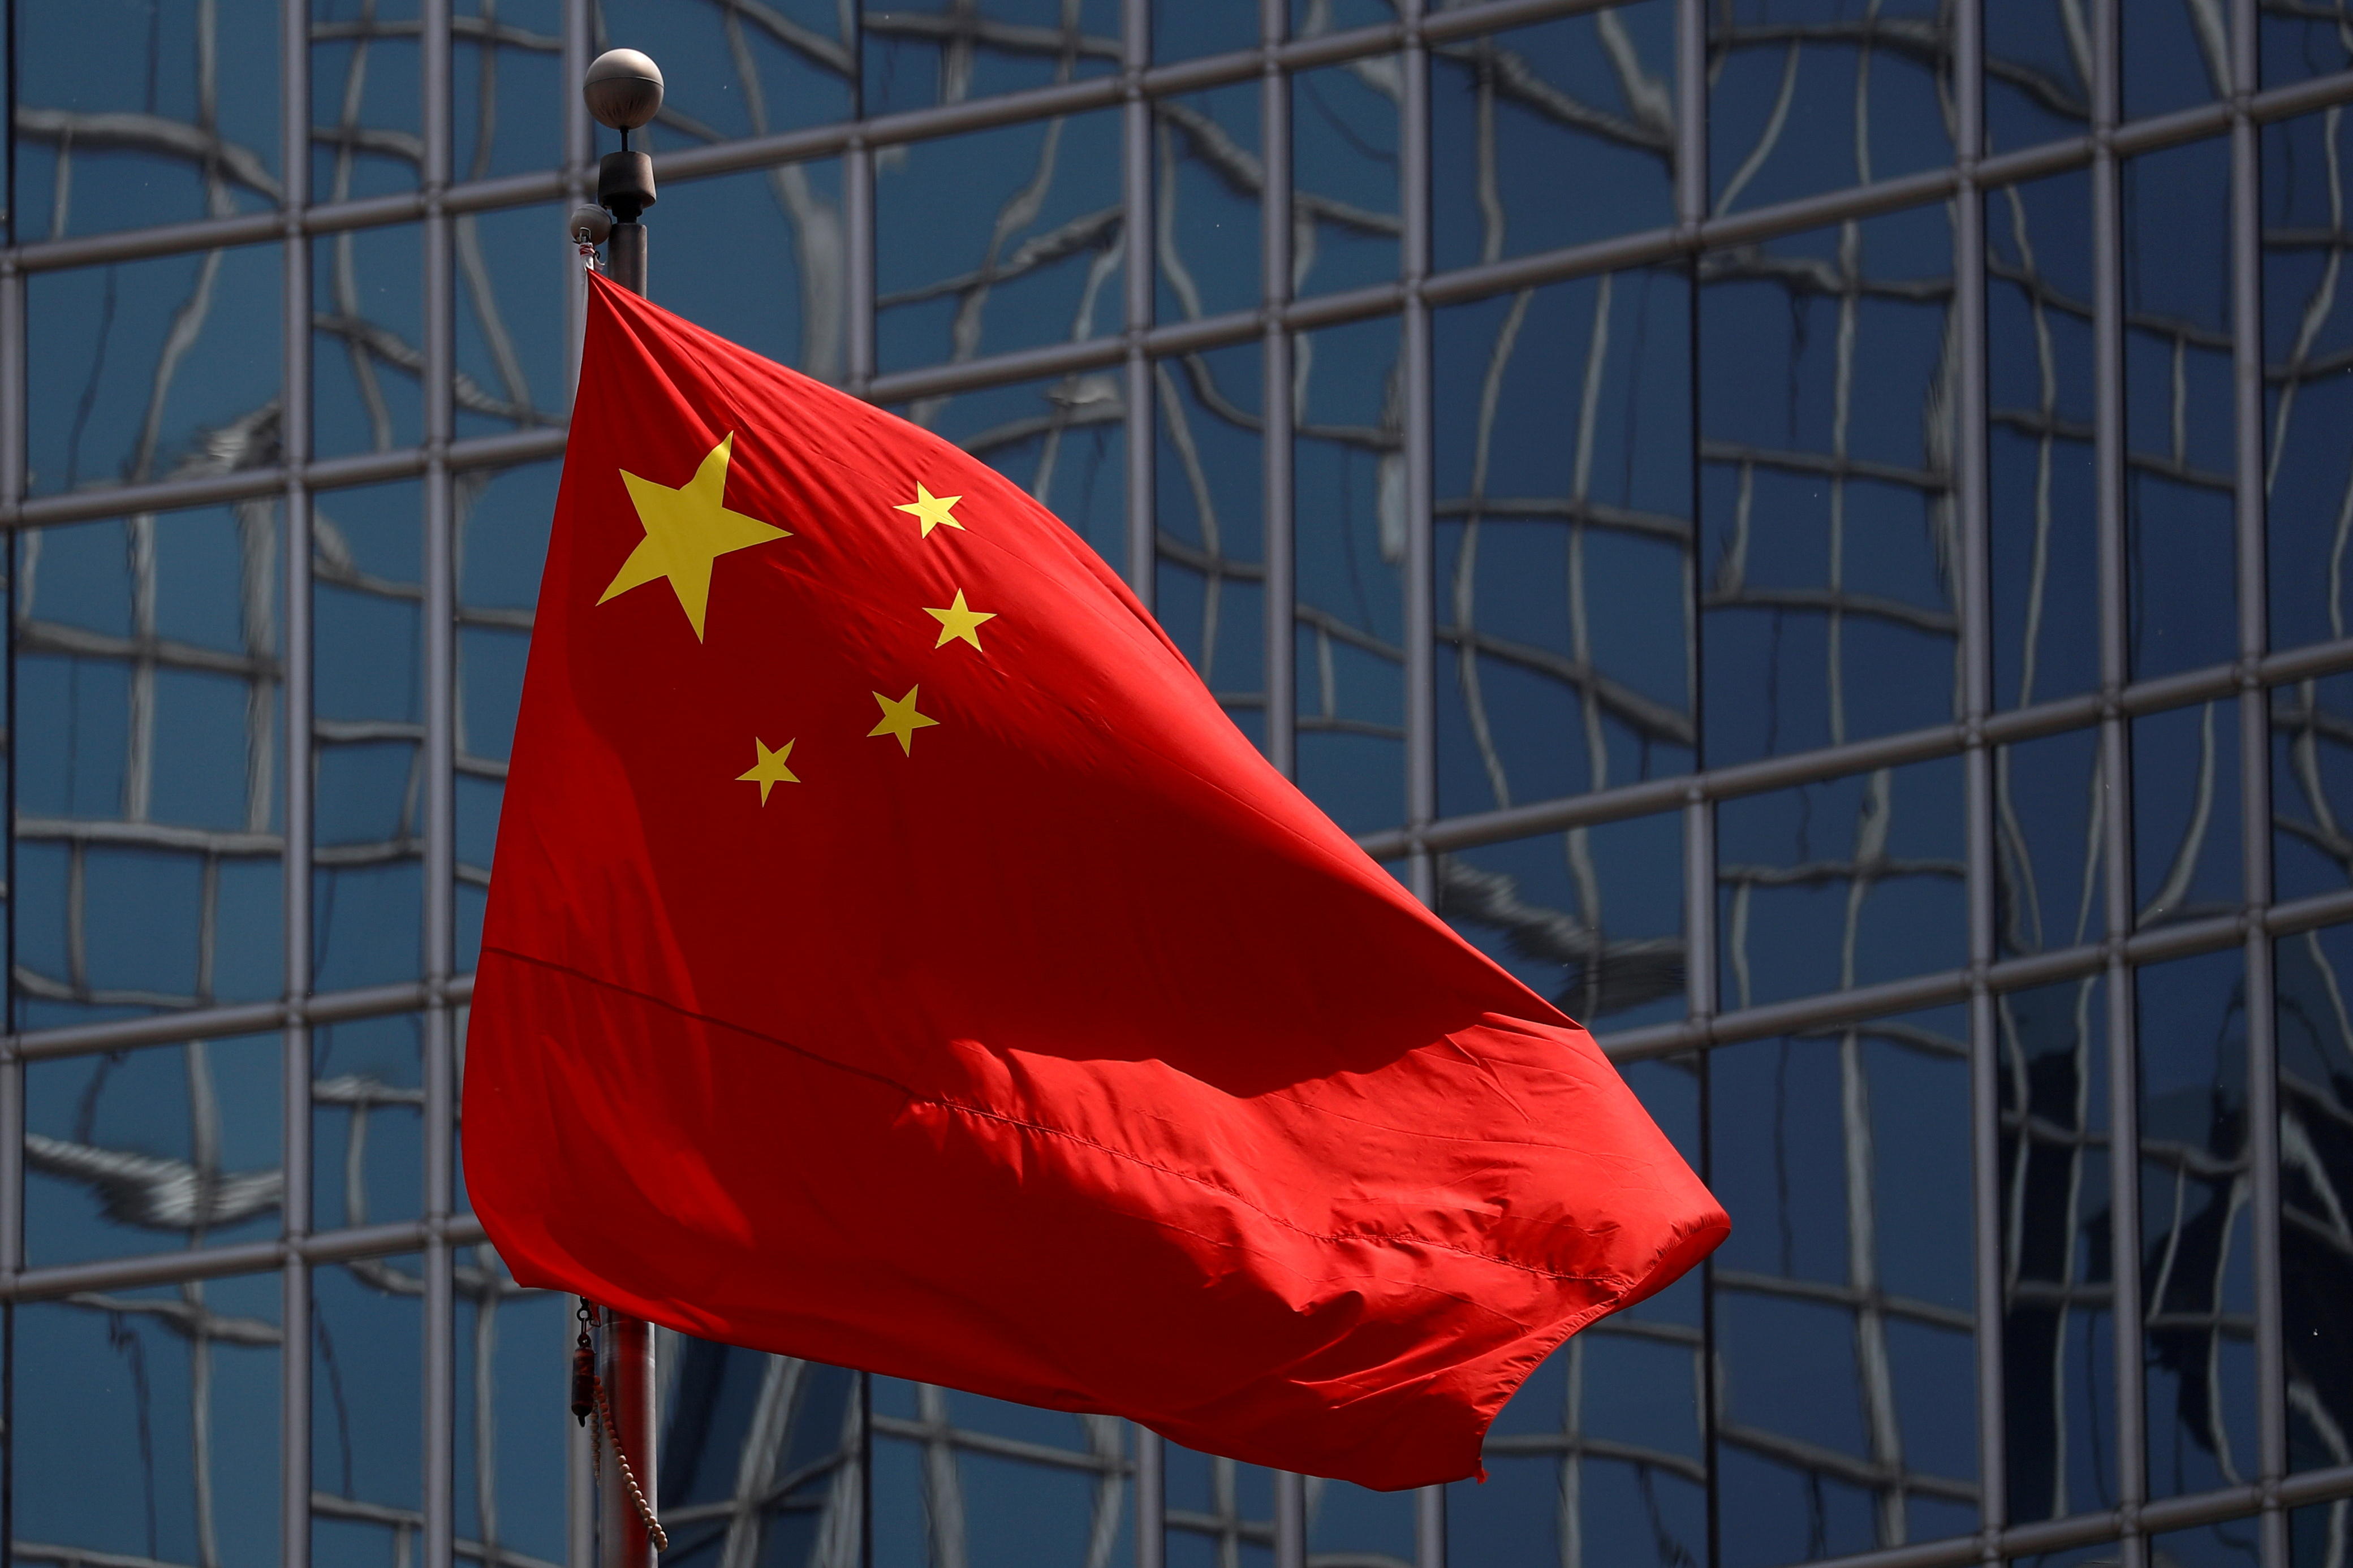 The Chinese national flag is seen in Beijing, China April 29, 2020. REUTERS/Thomas Peter/File Photo